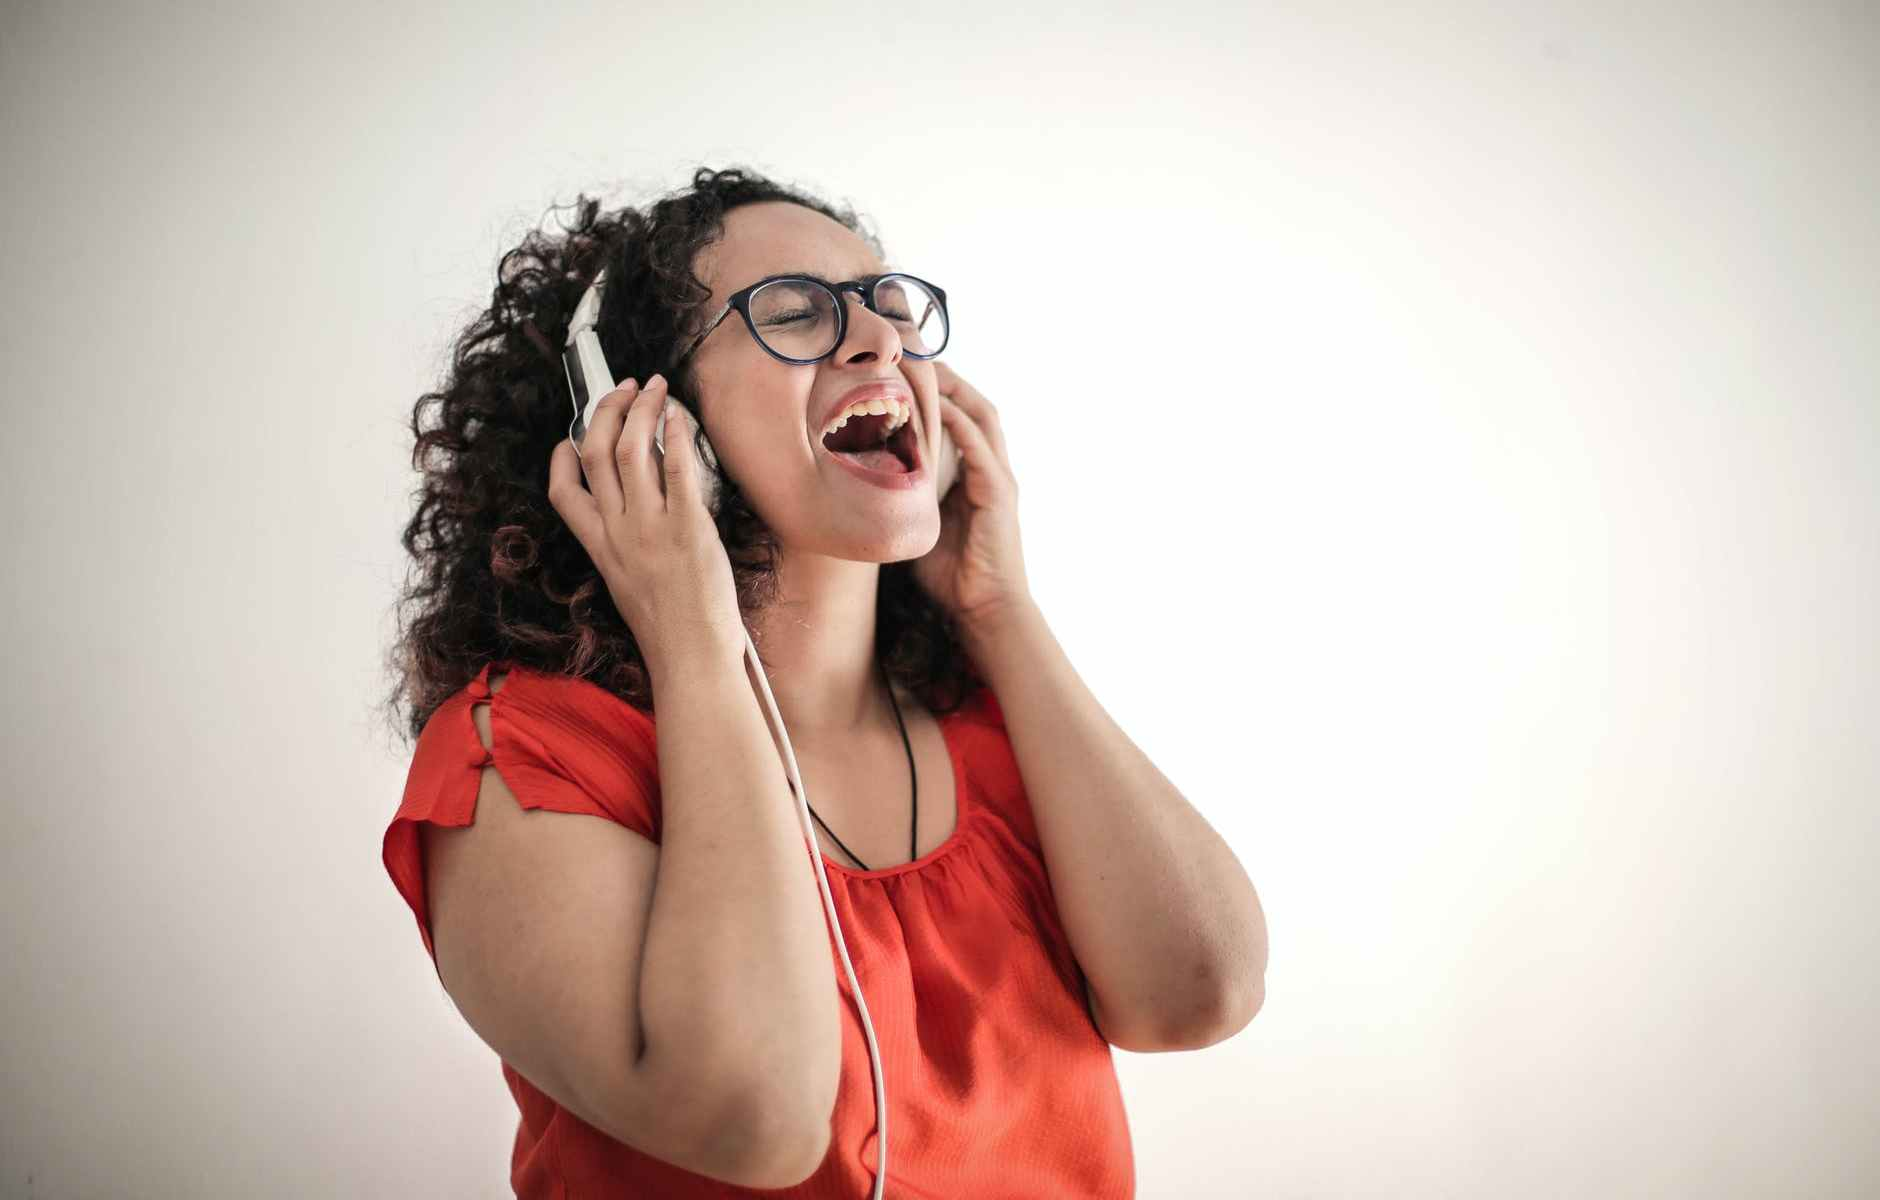 photo of singing woman in red top and black framed eyeglasses listening to music on her headphones